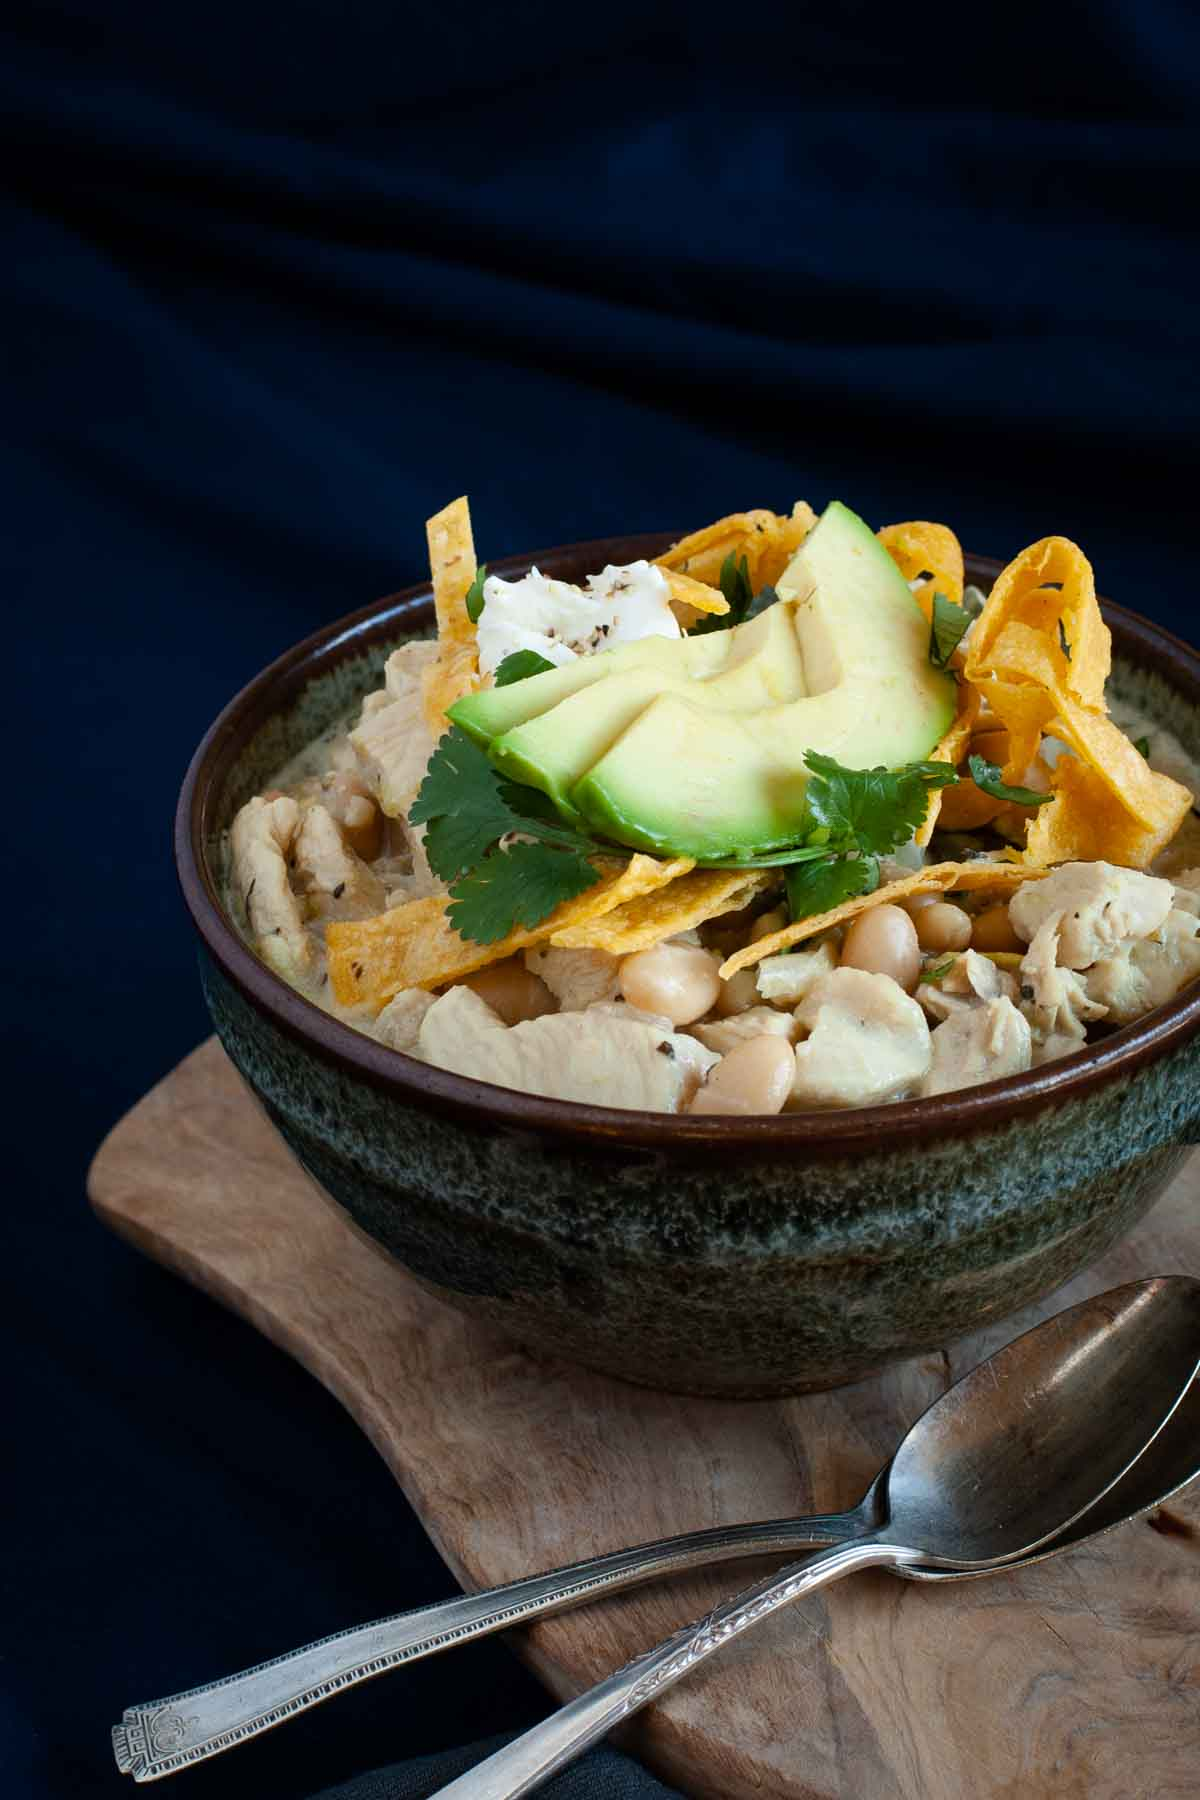 gluten free white chicken chili served in a bowl with avocado and tortilla strips